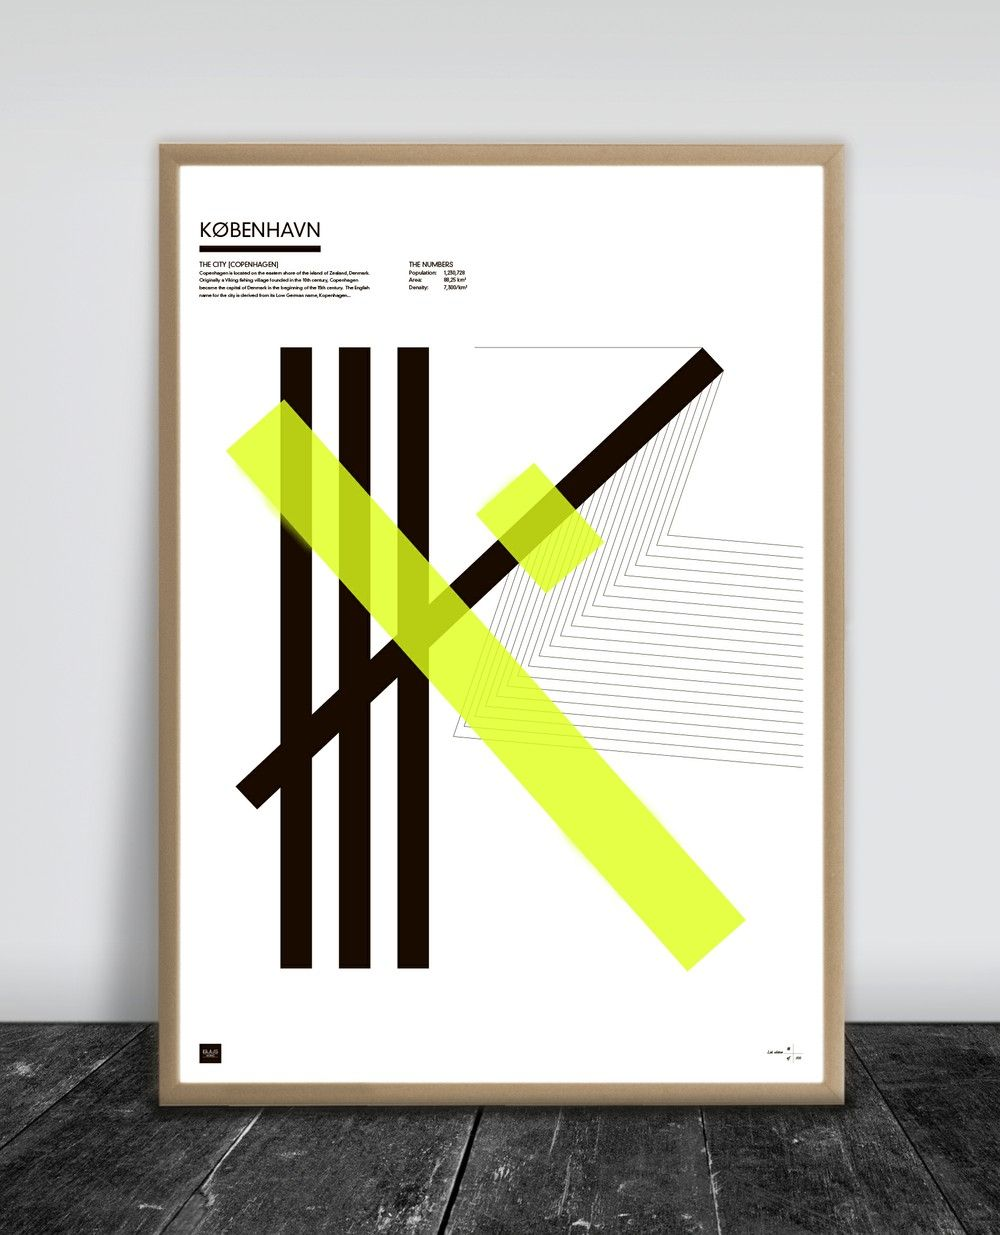 Design poster 70x100 - K Benhavn 70 X 100 Cm Via Buus Works Click On The Image To See More Design Posterscopenhagen2d